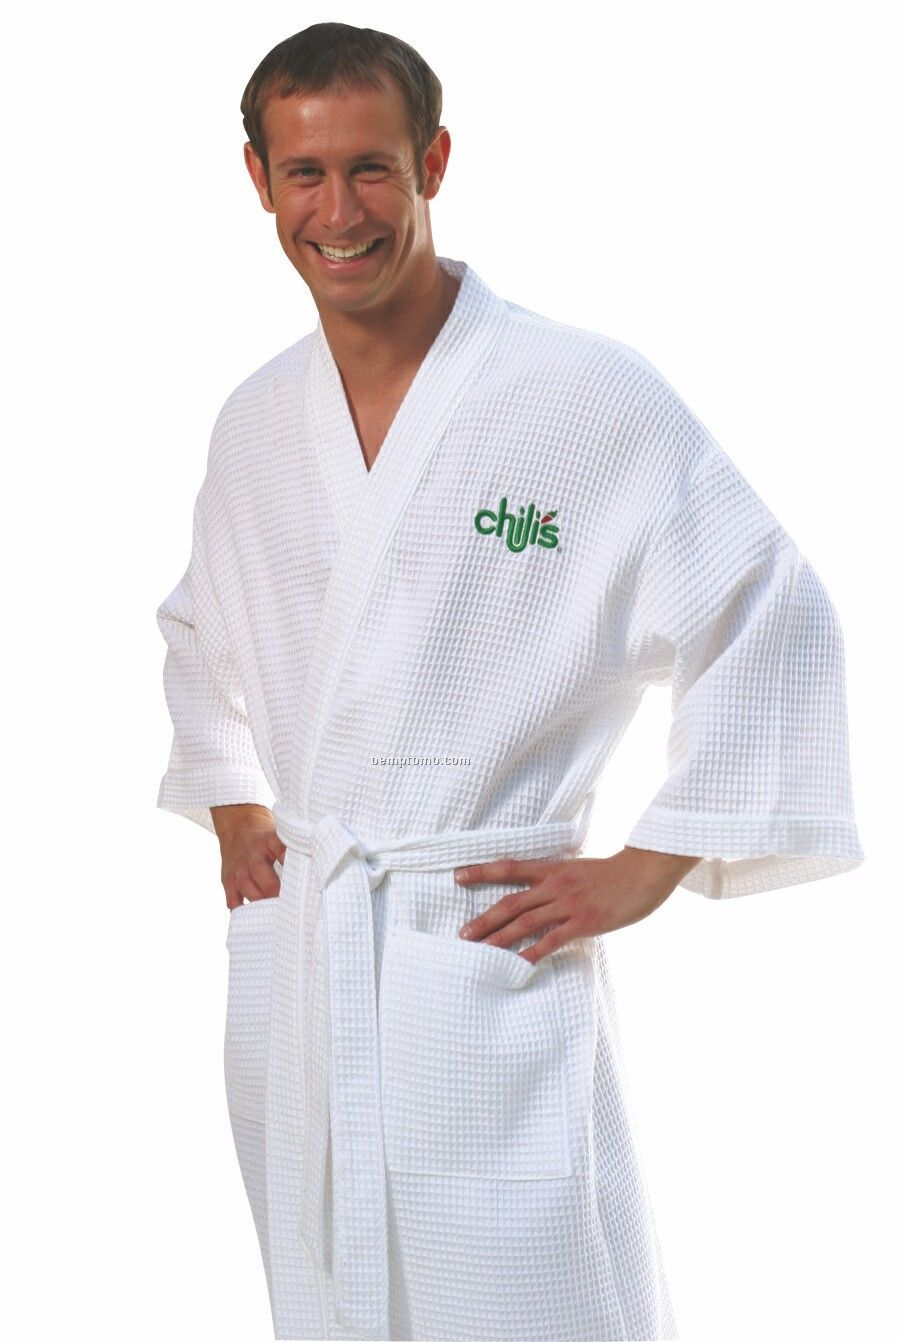 Gershon Clergy Robe For Men In Black. $ Buy Now. CLOSEOUT Hoshea Clergy Robe For Men In White & Black. $ Buy Now. Click the button below to add the Gershon Clergy Robe For Men In White to your wish list.